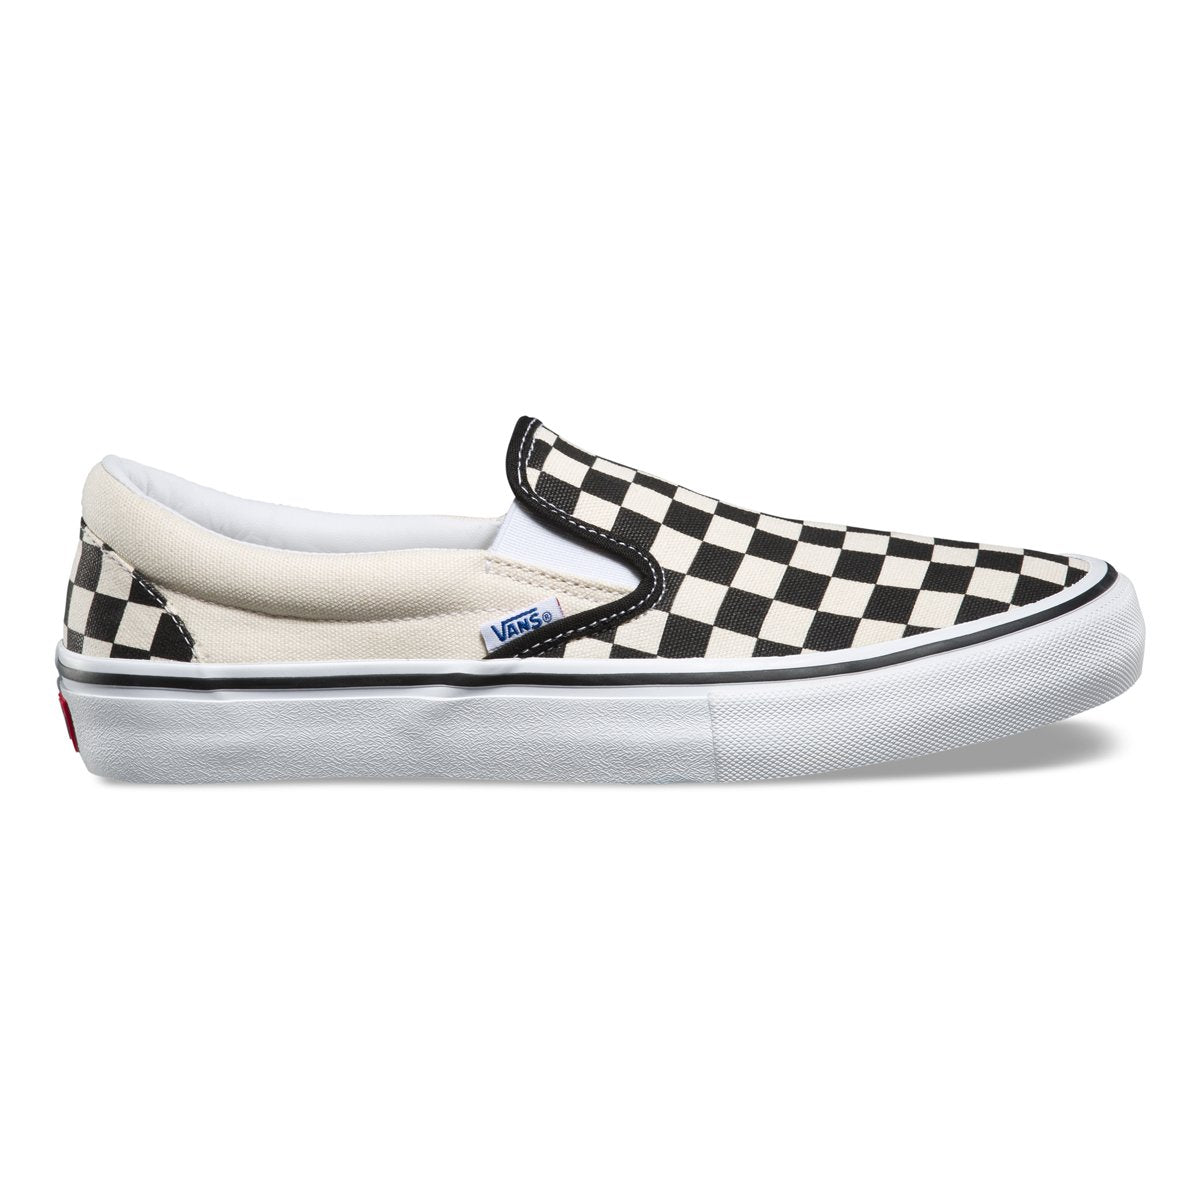 Zapatillas Vans Slip-On Pro - Black/White - Vans